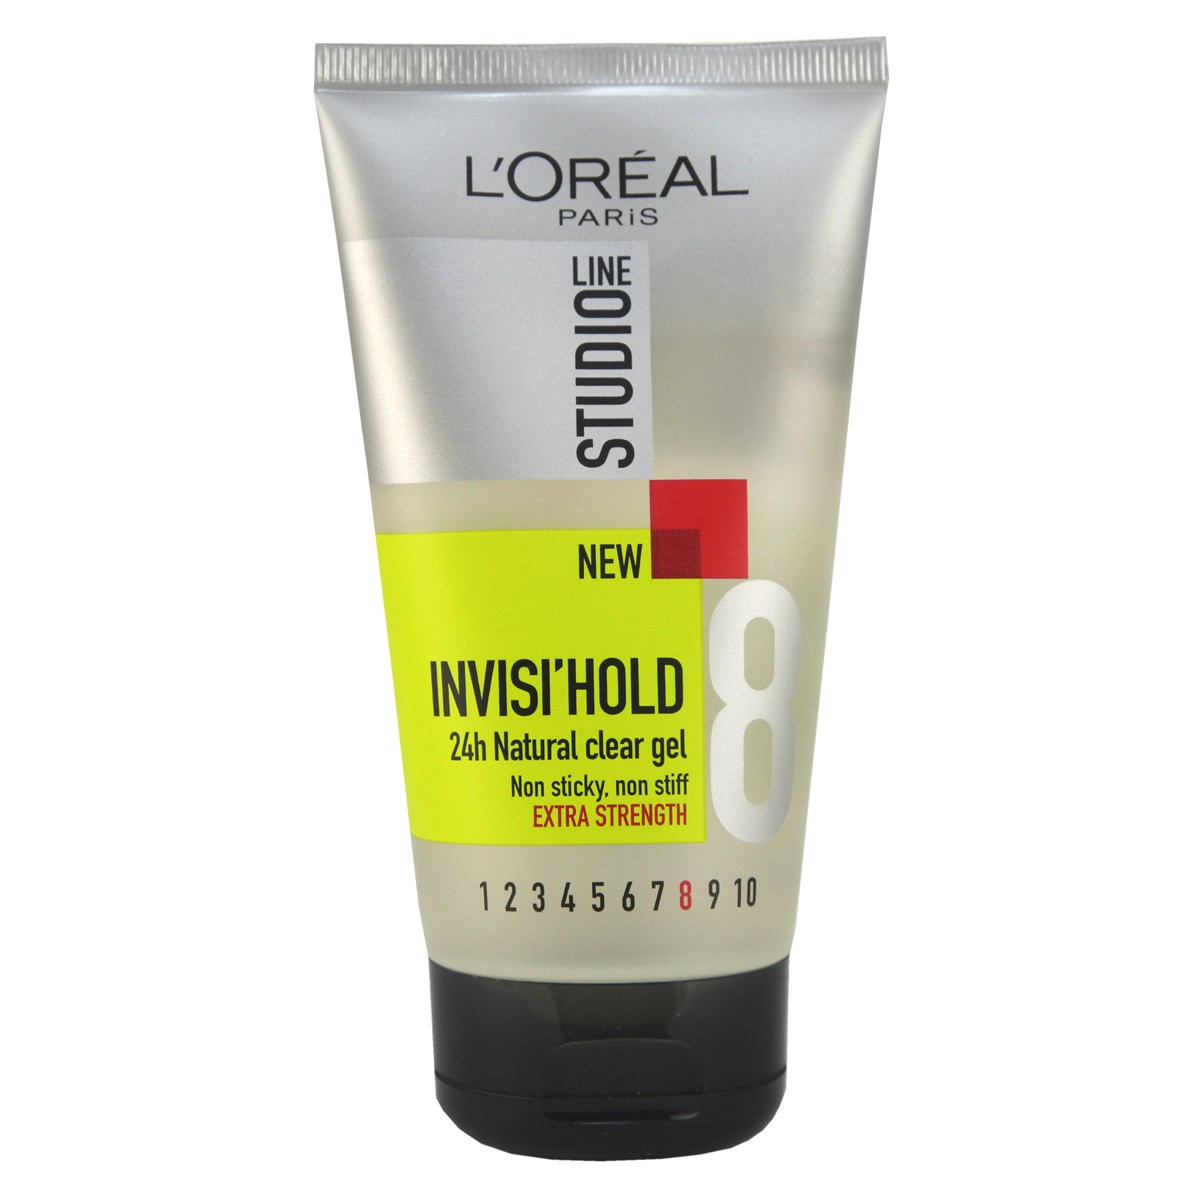 L'Oreal Paris Studio Line Invisi'Hold  Natural Clear Gel - Extra Strength